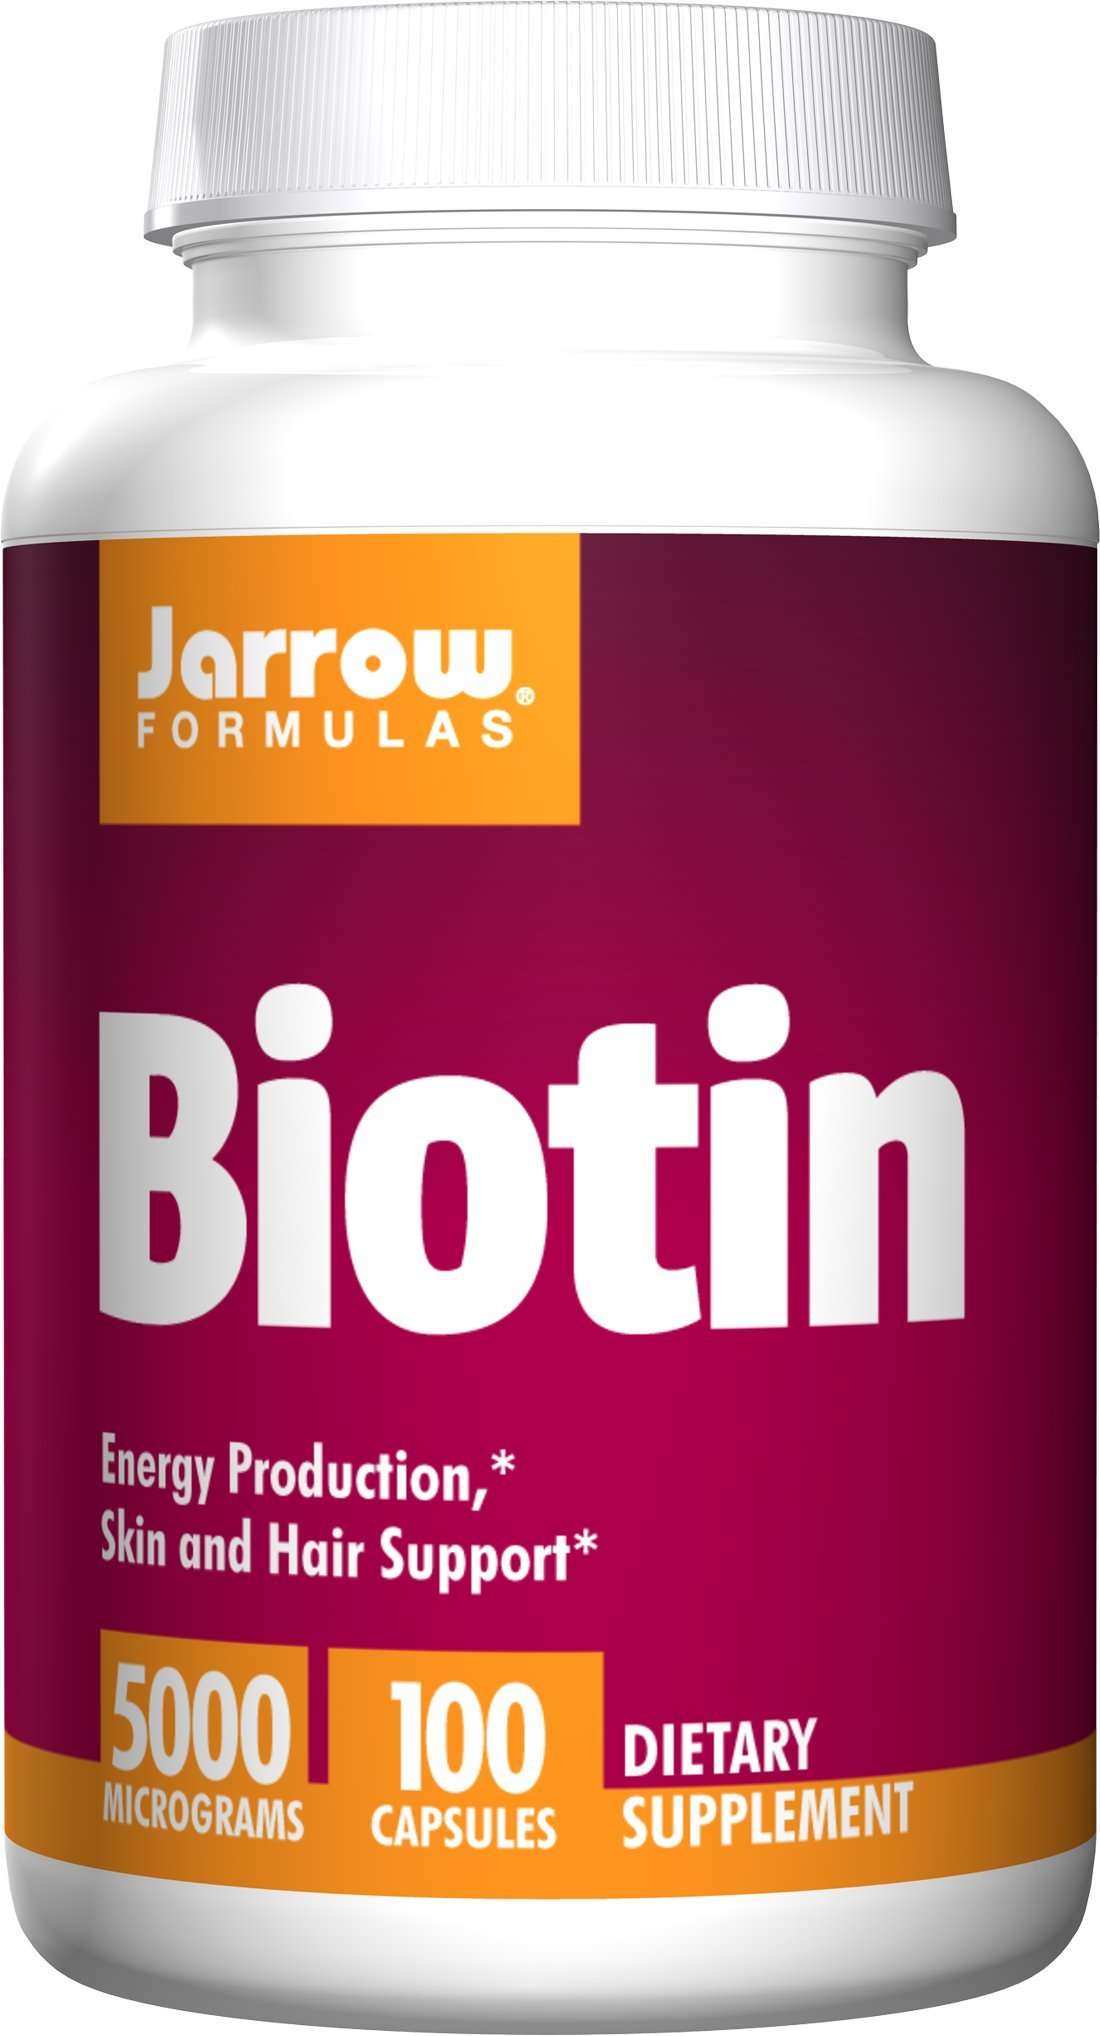 Jarrow Formulas Biotin 5000mcg, Supports Energy Production and Skin/Hair Support, 100 Capsules (Pack of 2)